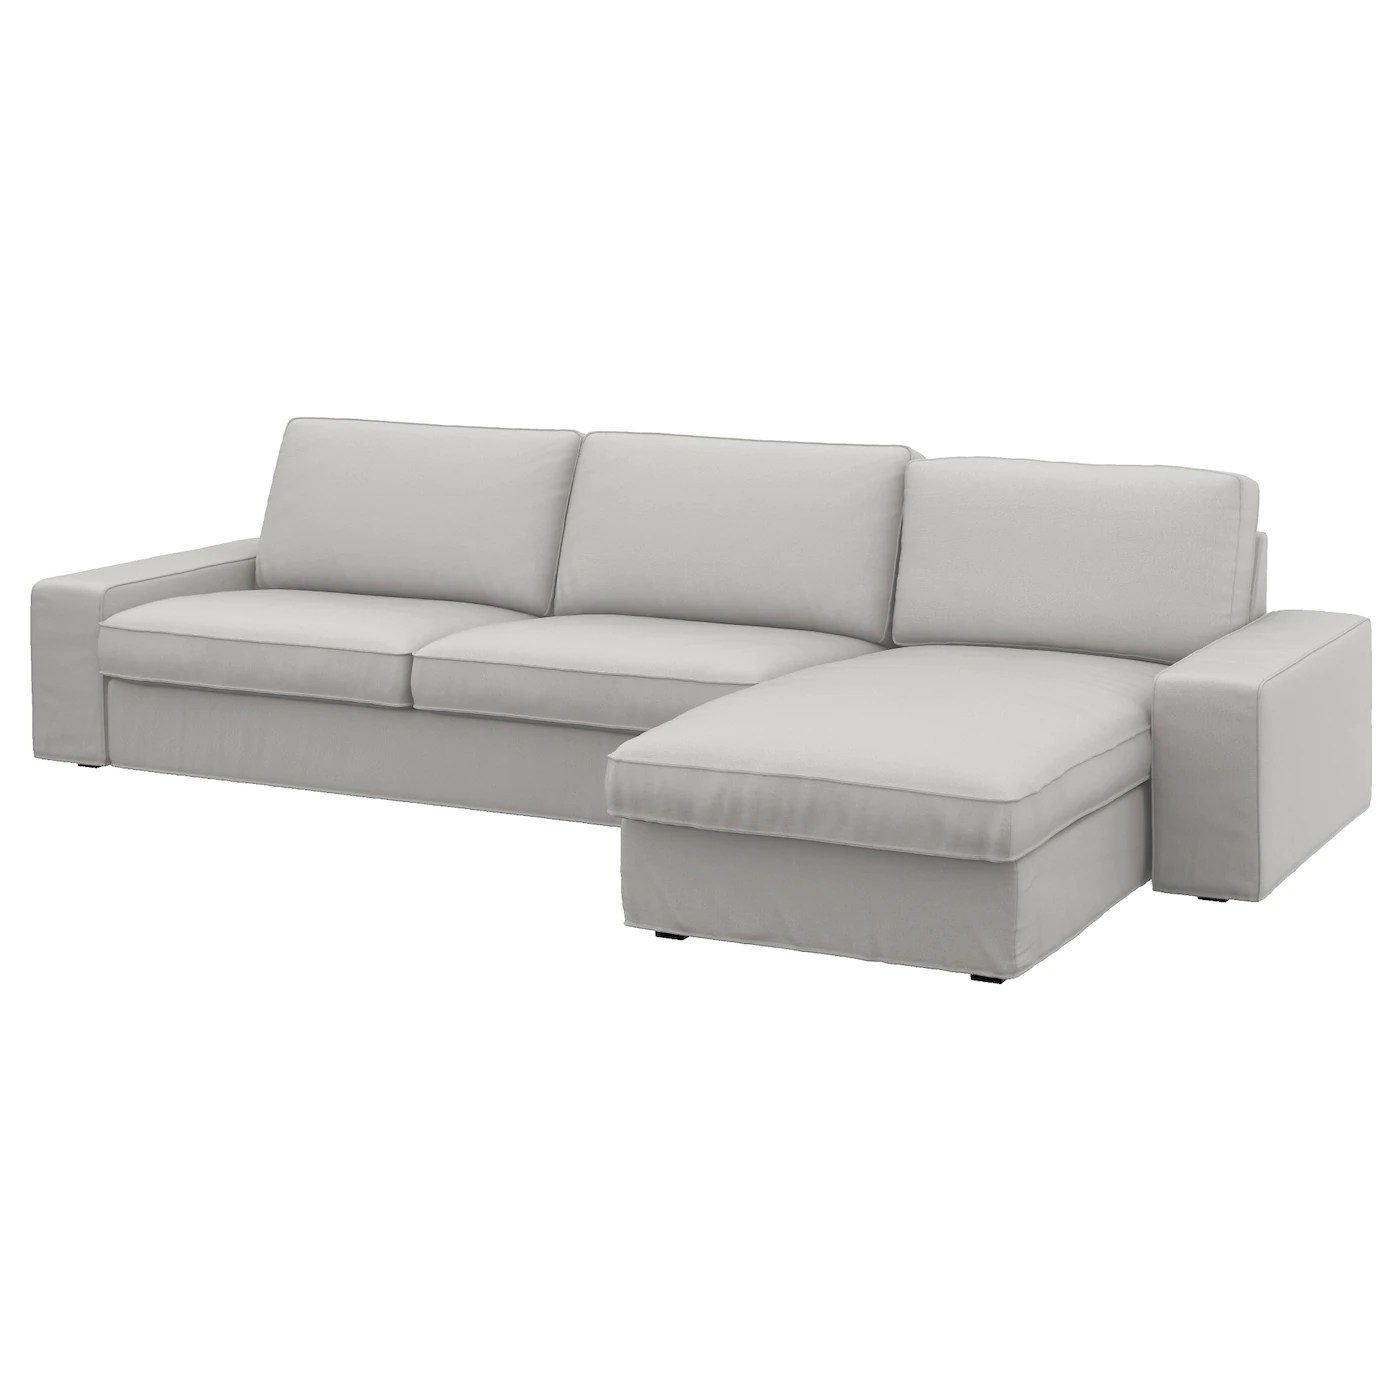 Bettsofa Kivik Ikea Kivik Sofa Chaise Longue Saigonmias